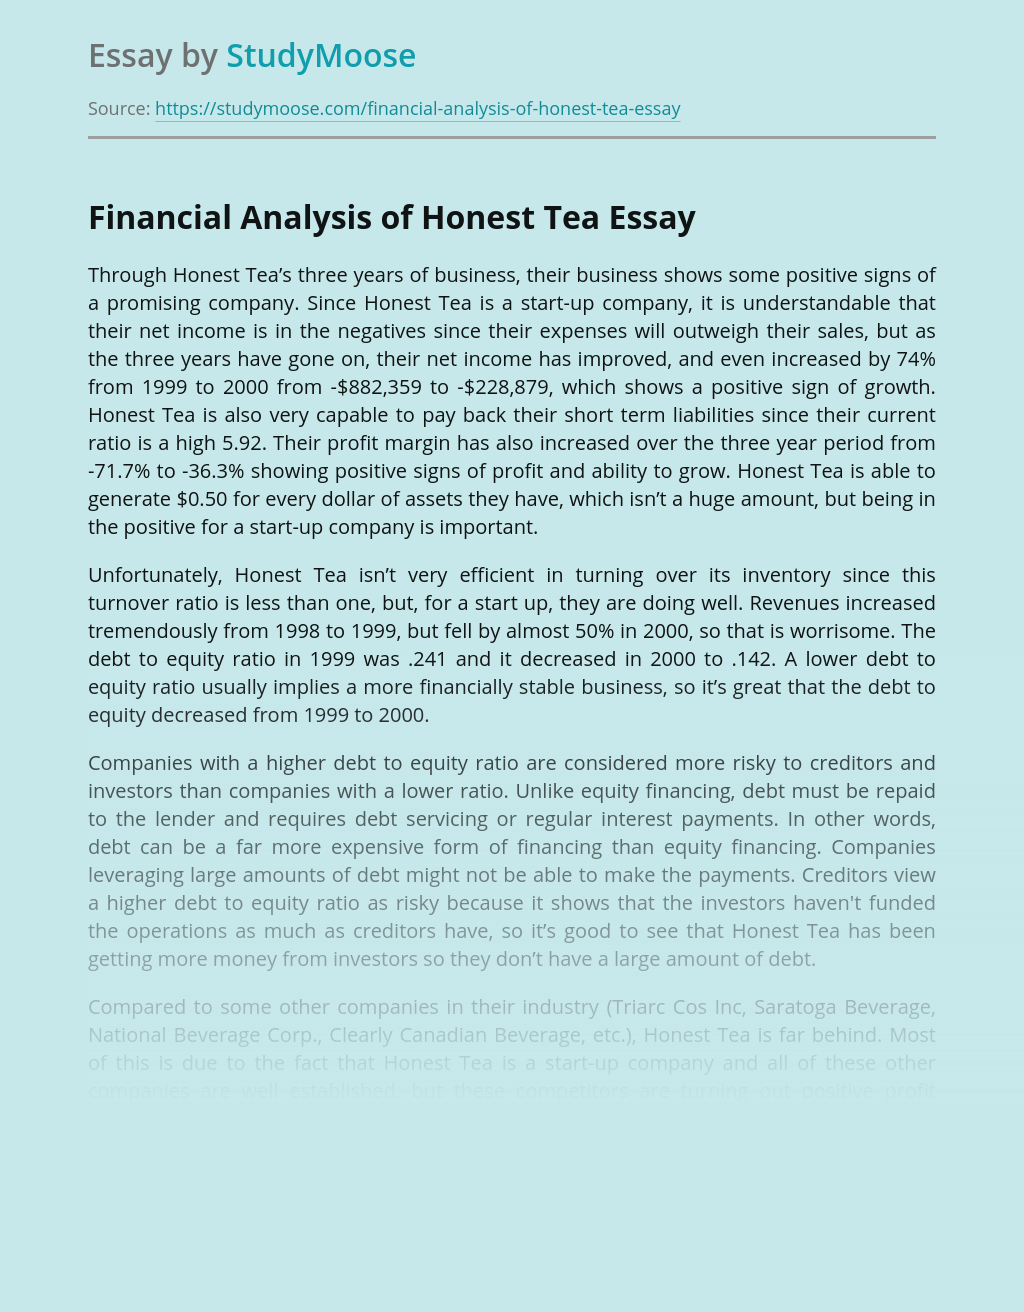 Financial Analysis of Honest Tea